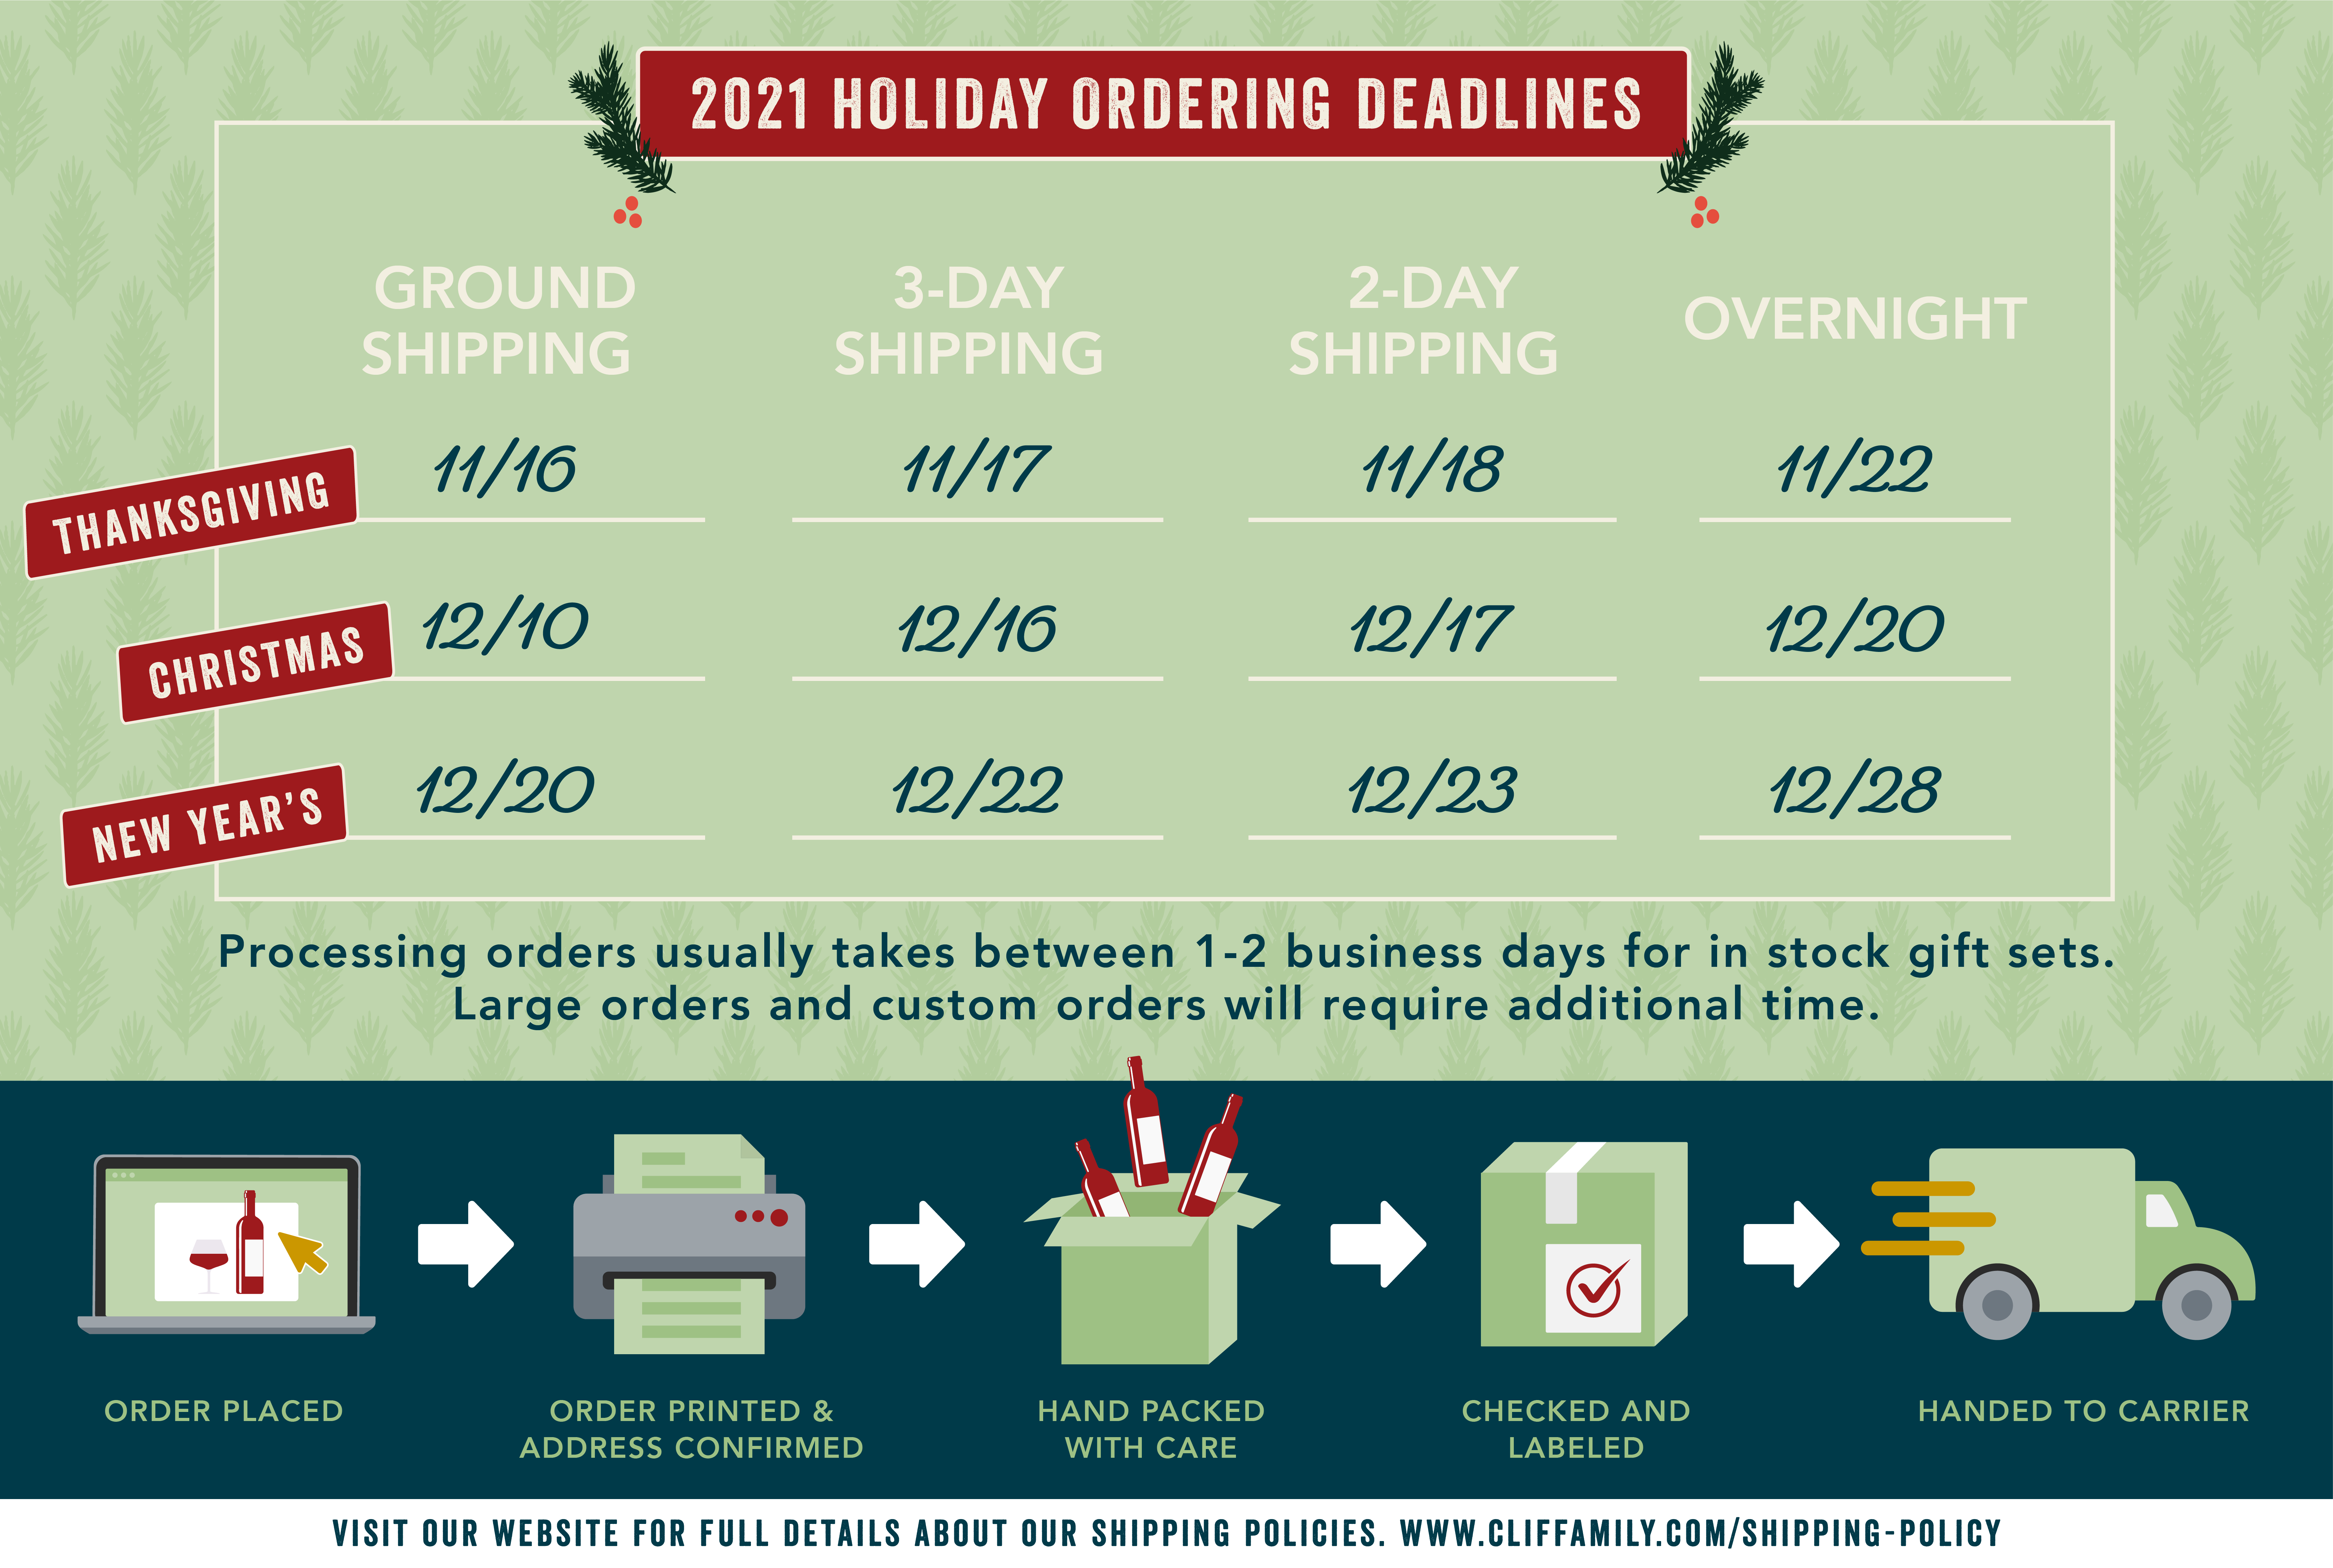 2021 Holiday Shipping Deadlines